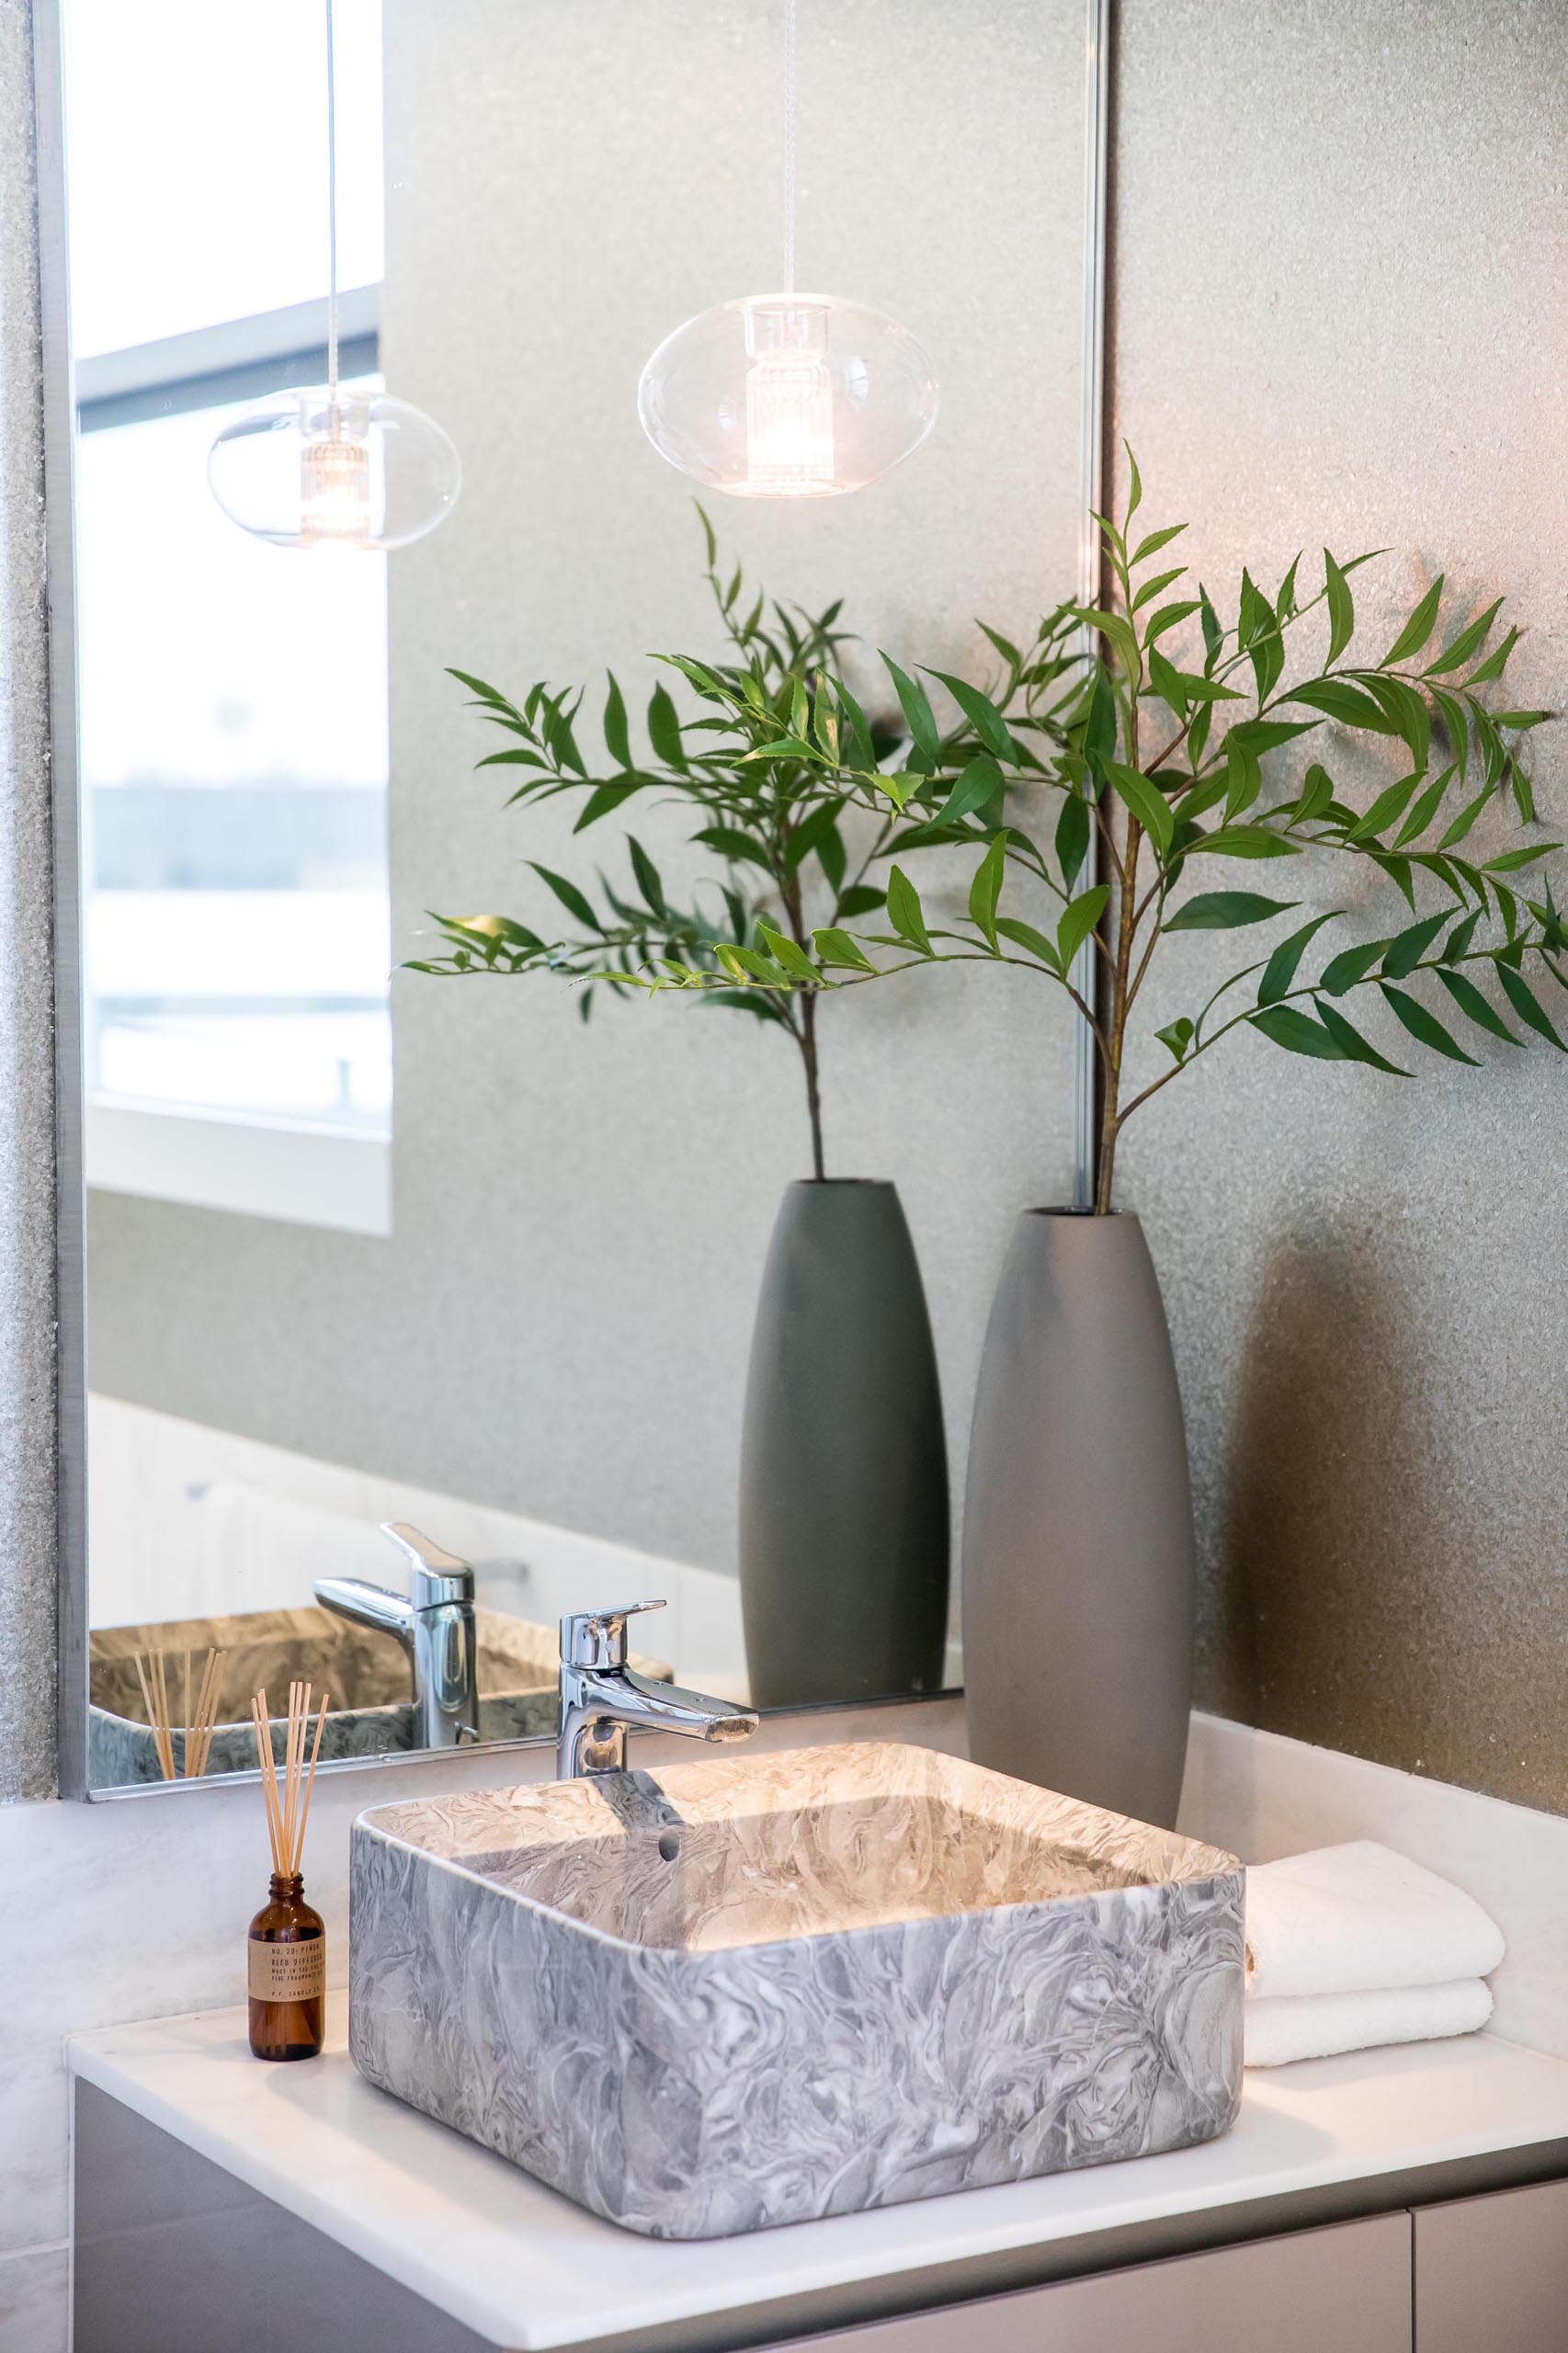 A modern bathroom with a square vessel sink.